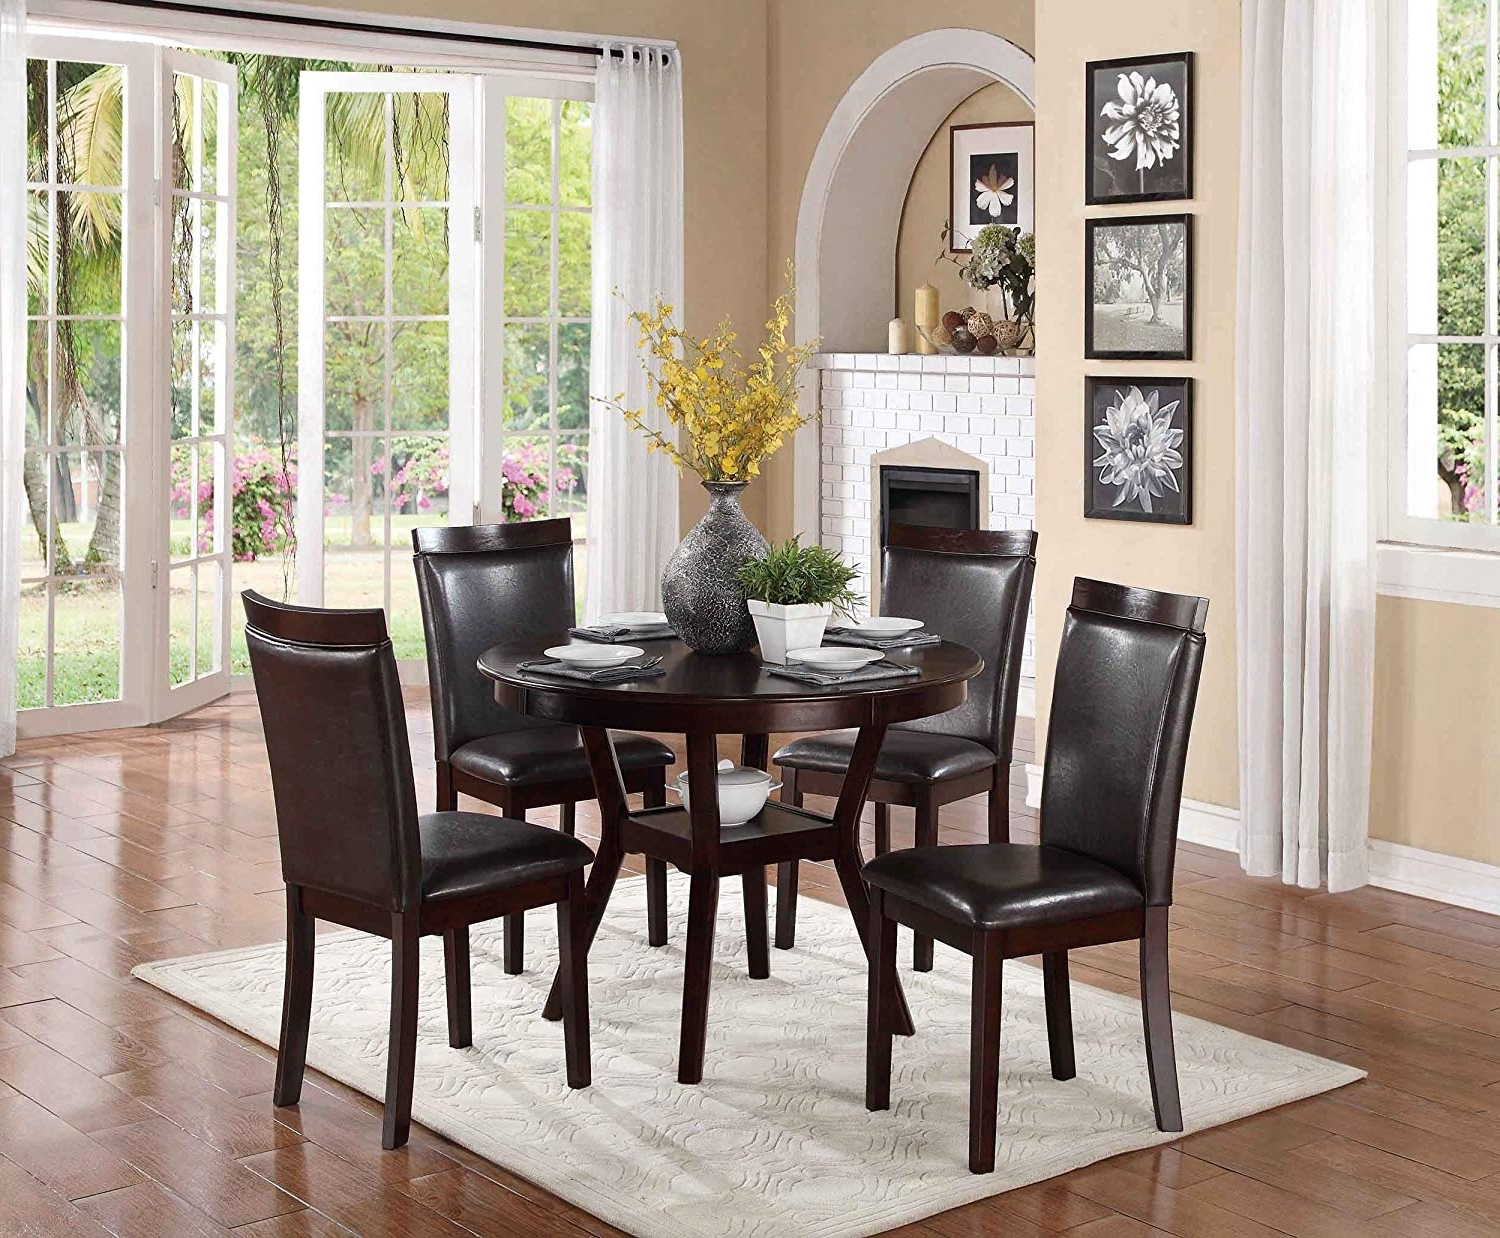 Grady 5 Piece Round Dining Sets With Recent Amazon – Homelegance Shankmen Round 5 Piece Dining Set, Espresso (Gallery 18 of 25)